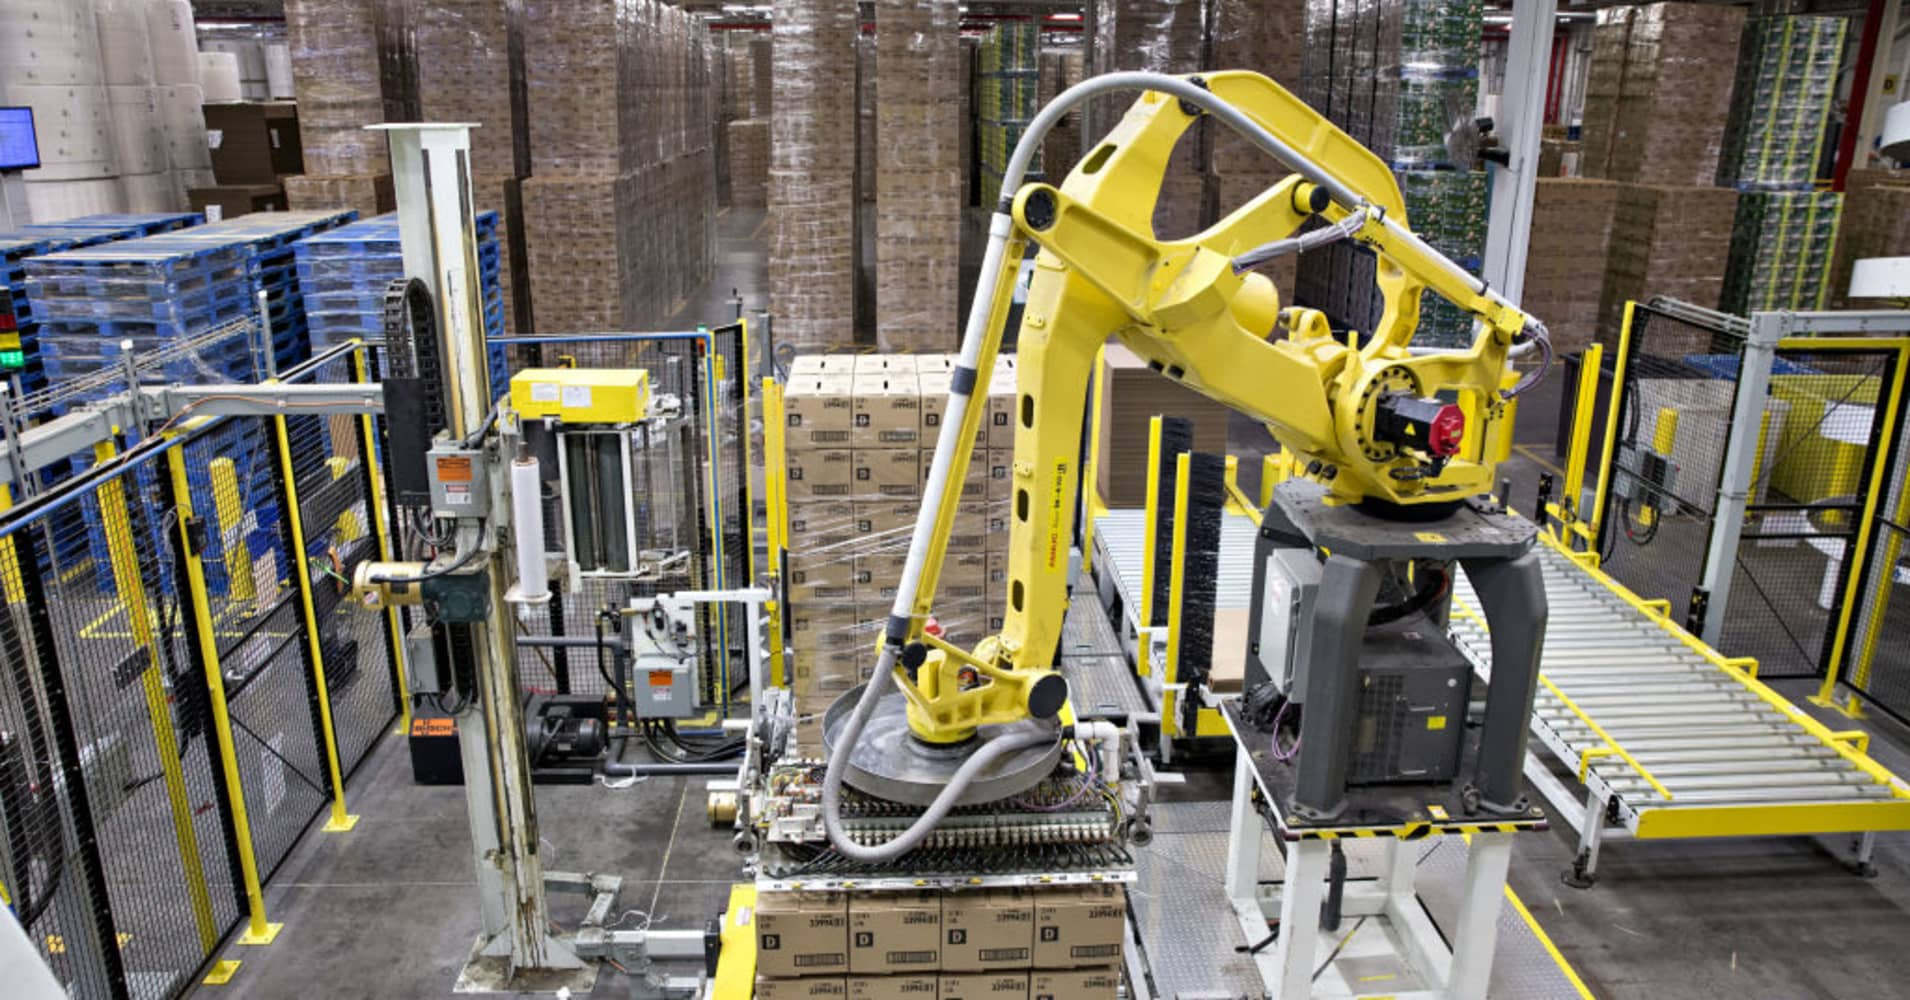 A robot organizing boxes in a factory.